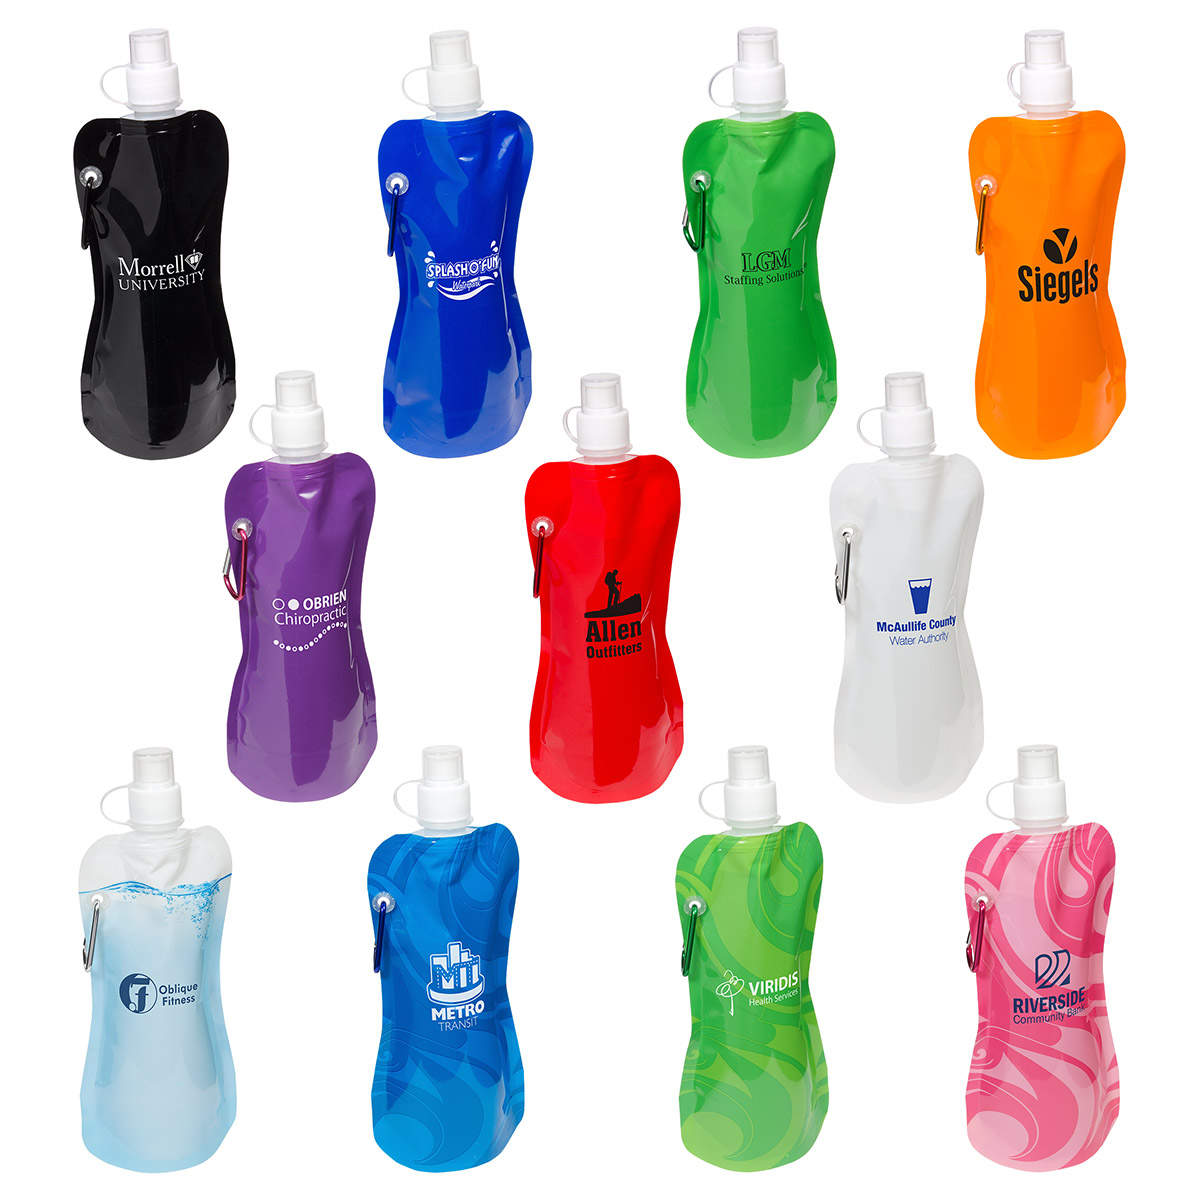 Flex Foldable 16 oz Water Bottle with Carabiner, WKA-FW13, 1 Colour Imprint